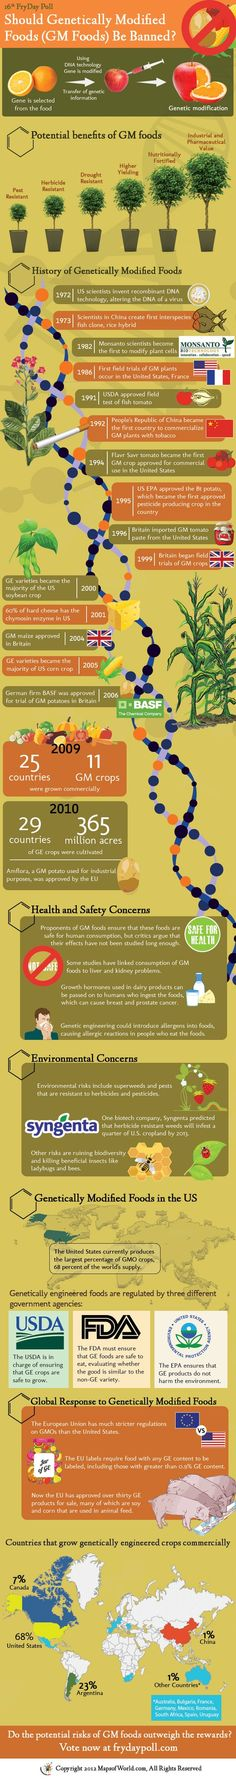 Infographic: Should Genetically Modified (GM) Foods be Banned?